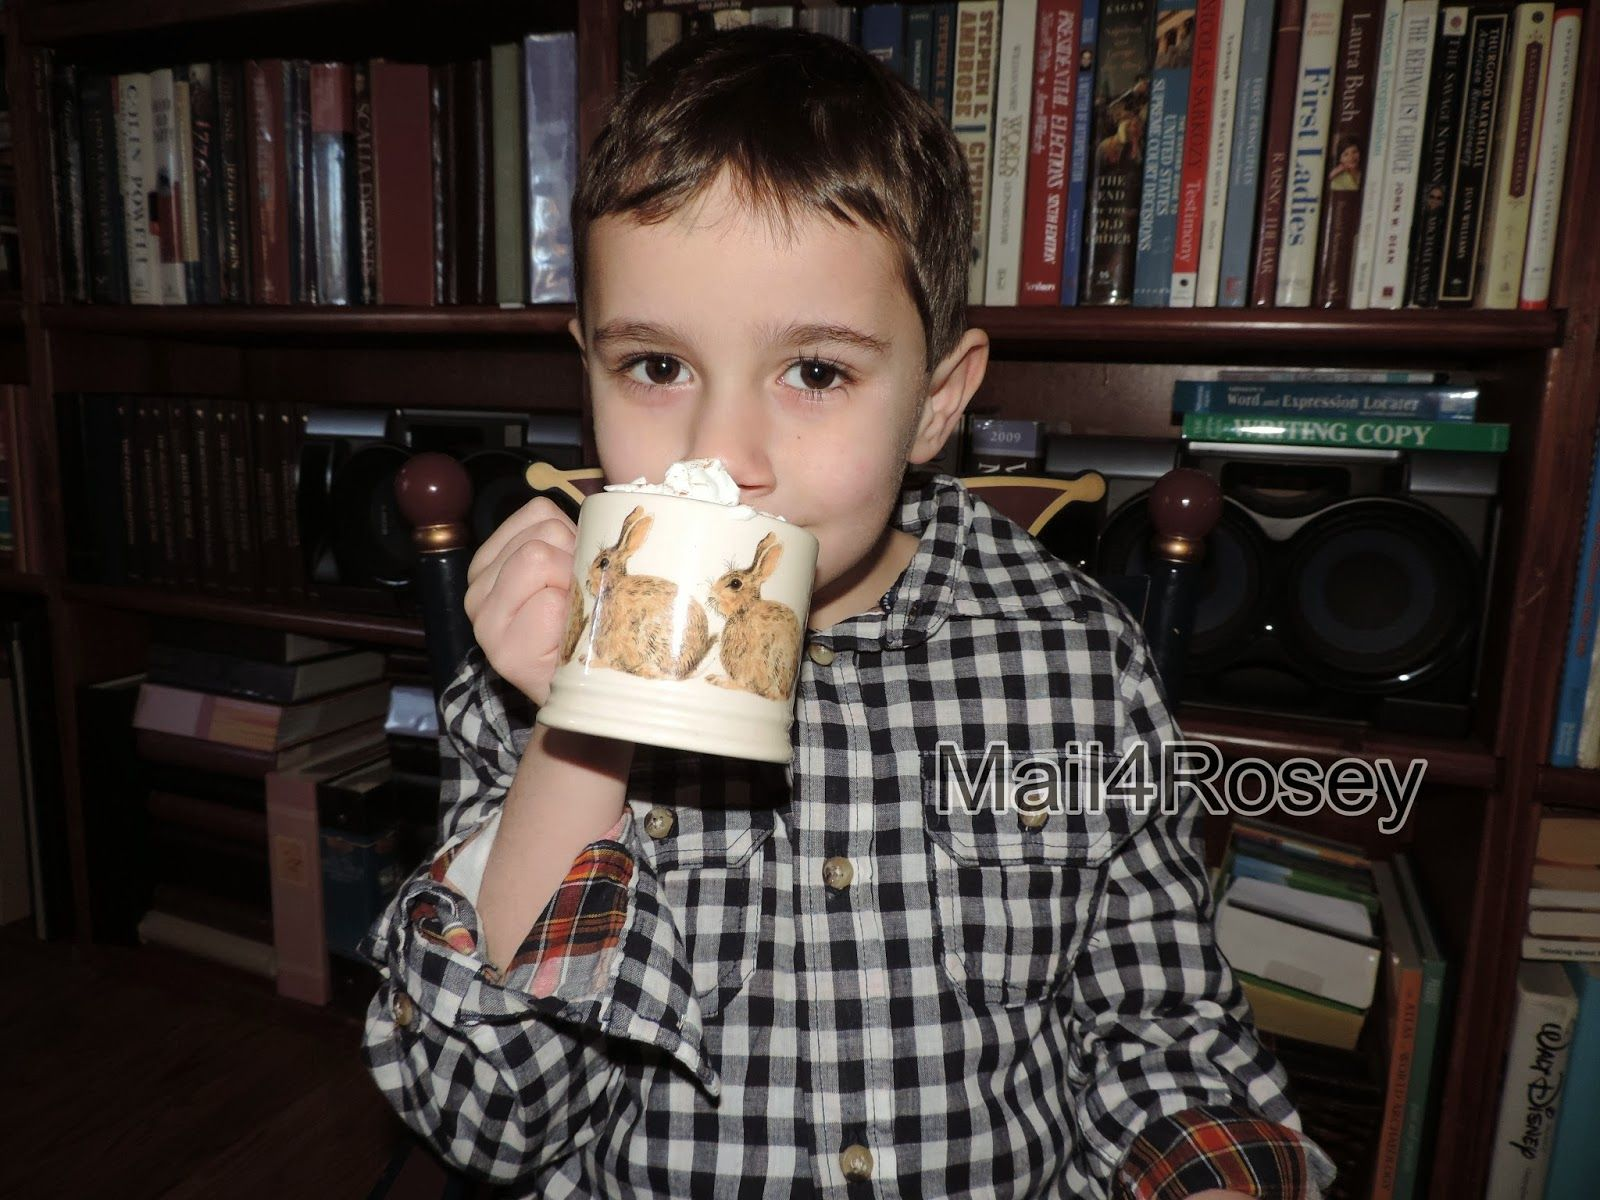 Mail4Rosey: Limited Edition #TruMoo Chocolate Marshmallow Milk!! @Mail4Rosey #sponsored